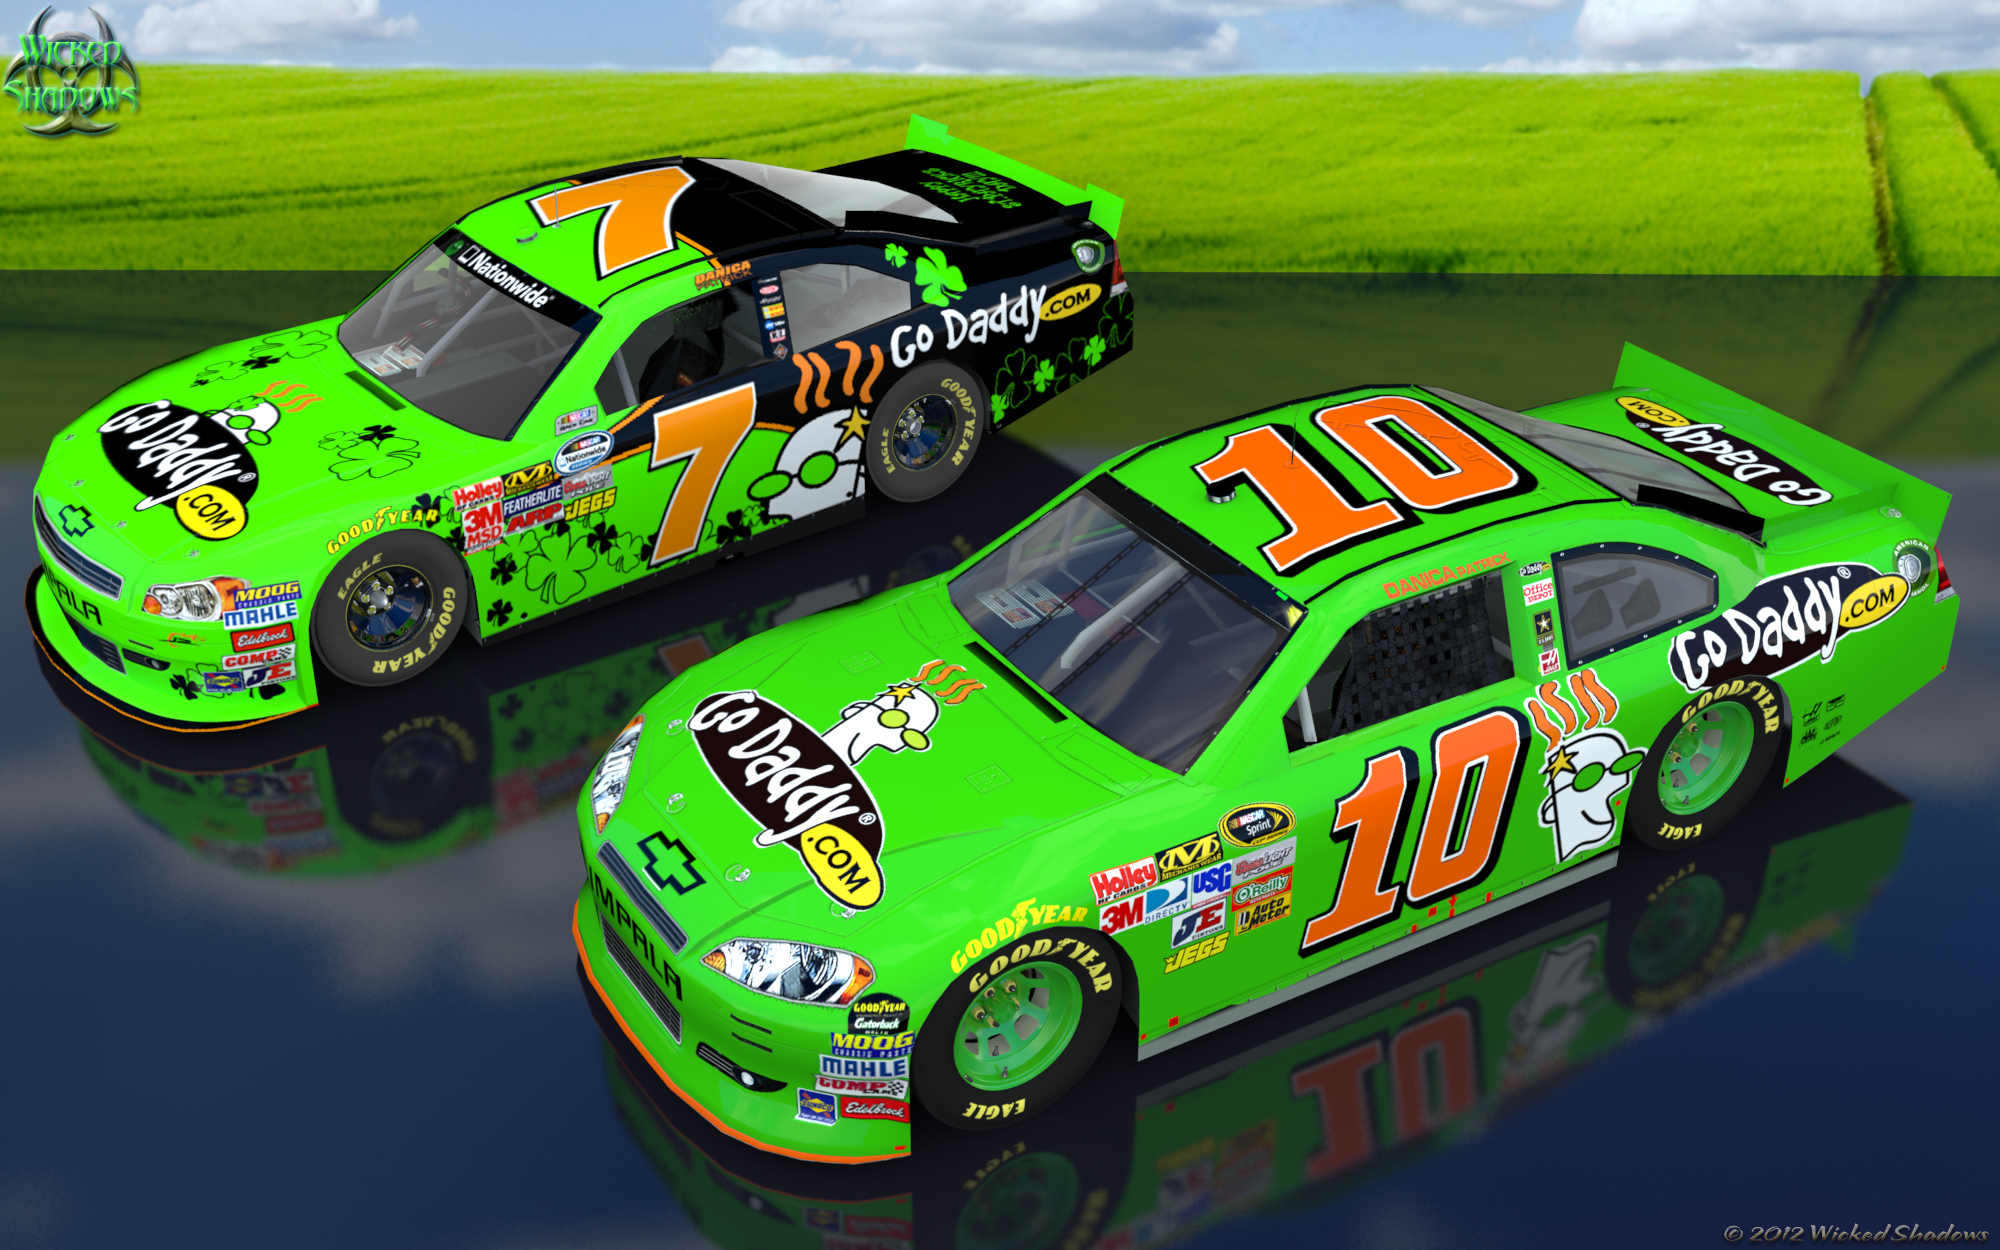 Wallpapers By Wicked Shadows Danica Patrick Dale: Wallpapers By Wicked Shadows: Danica Patrick 2012 Double